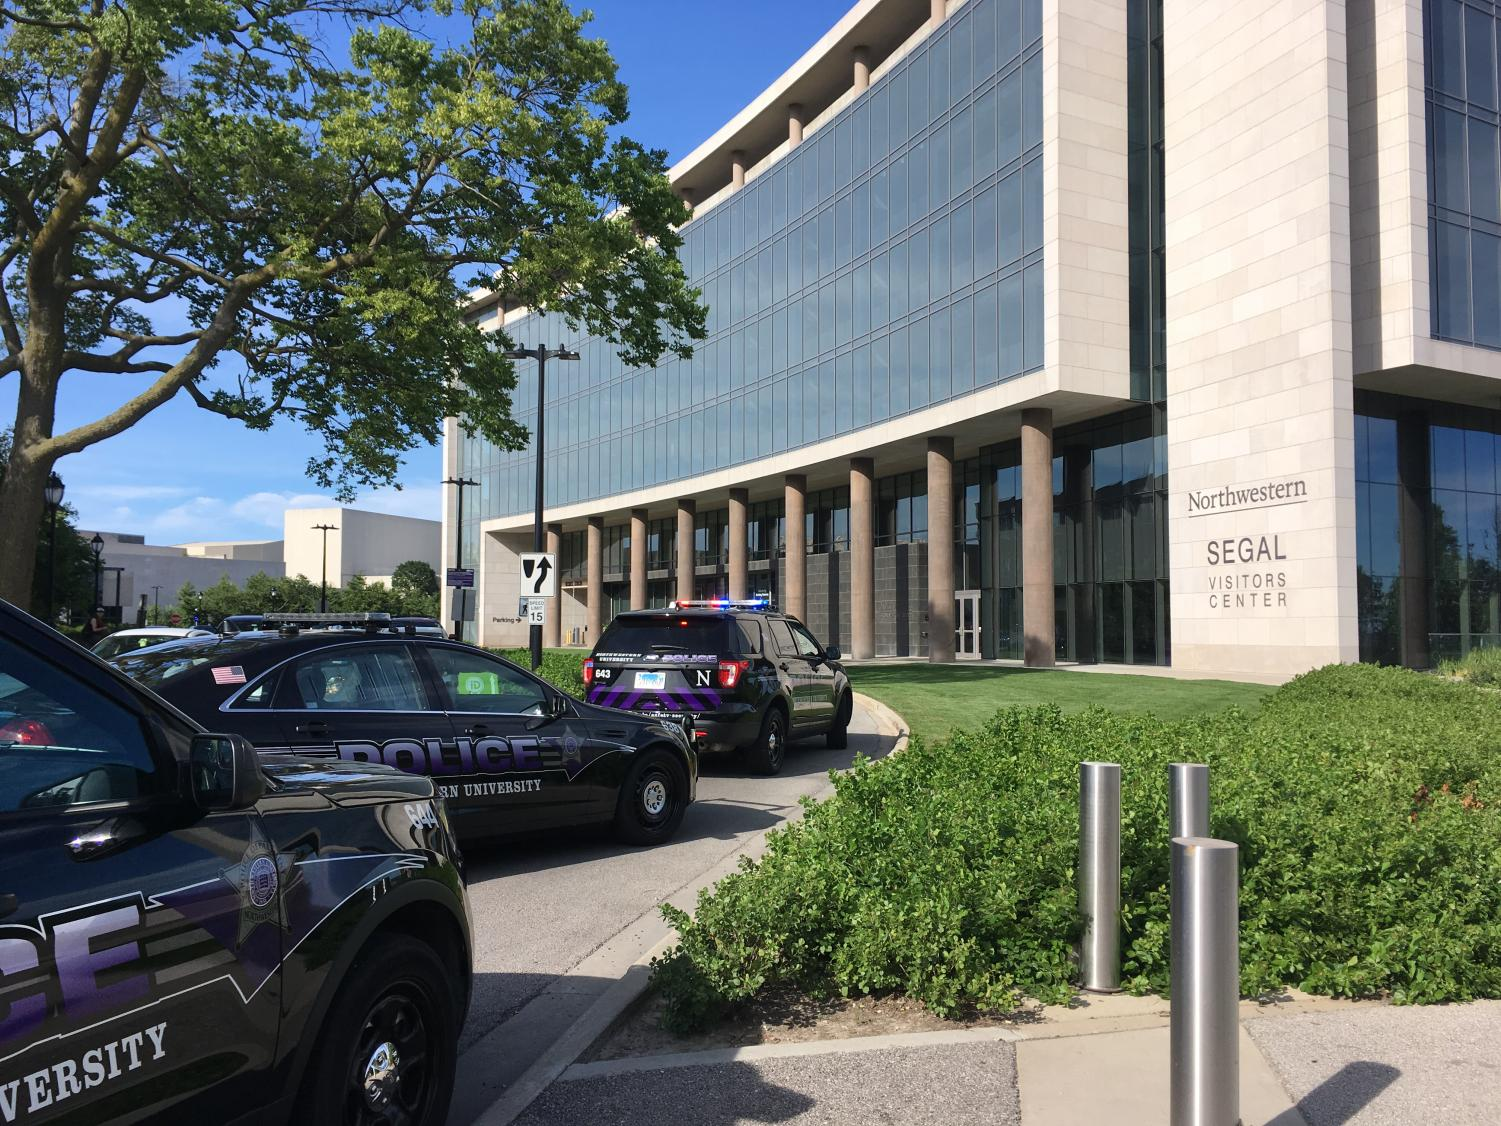 Northwestern police cars parked outside the Segal Visitor's Center Tuesday evening after a man with a gun was reported on campus. The suspect, who had a wooden toy gun, was taken into custody and cited for disorderly conduct.